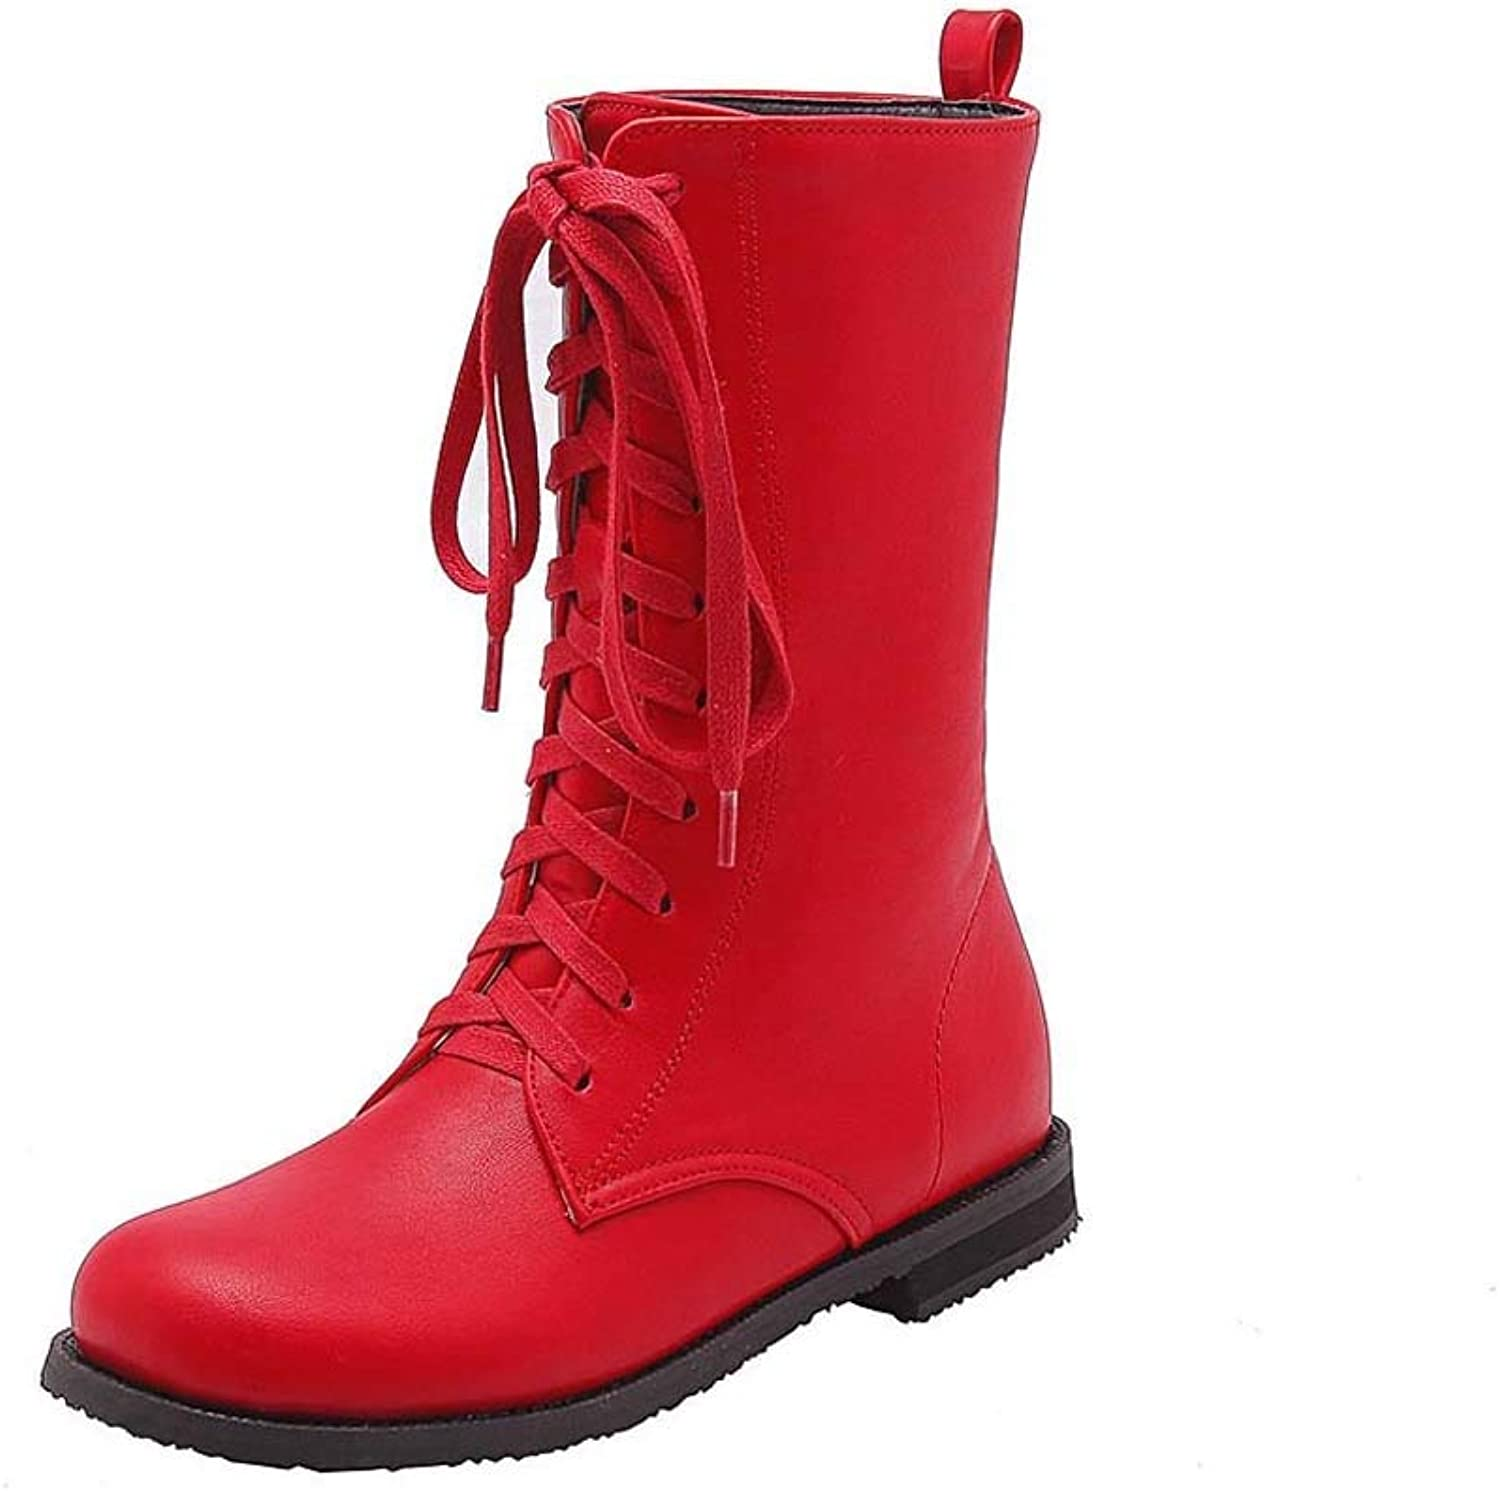 Women's Boots Wild Size 34-43 Boots Yellow, Red, Black